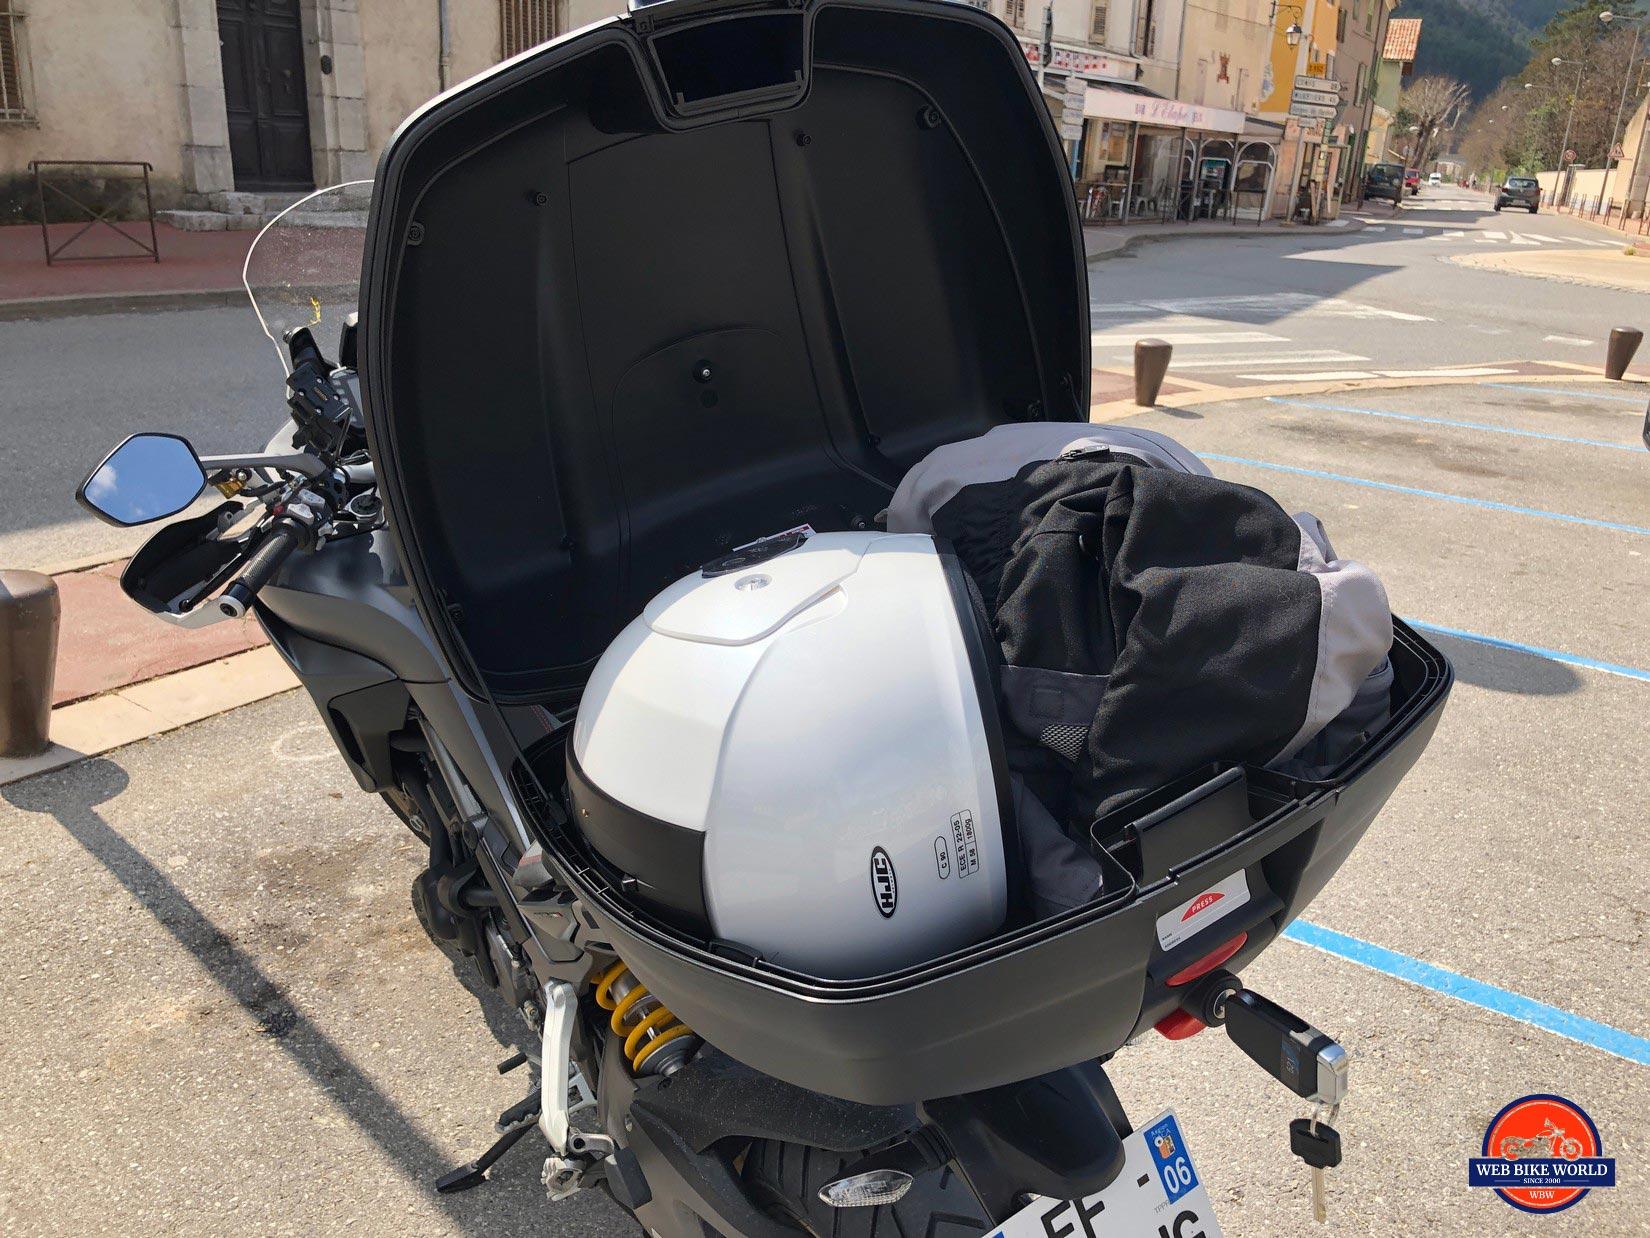 2019 Ducati Multistrada 1260S tour pack with gear inside.